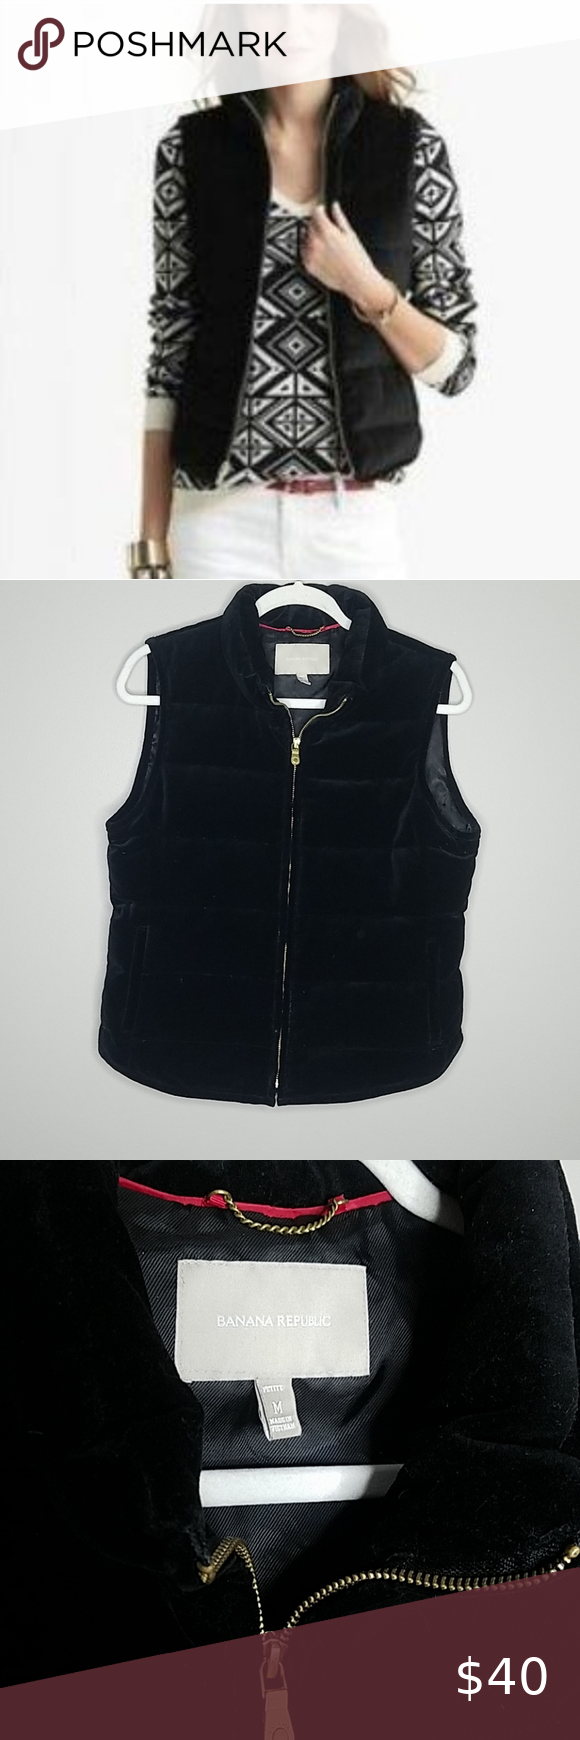 Banana Republic Black Velvet Vest, PM Banana Republic Black Velvet Vest, Size Petite Medium, Zips up the Front with two working pockets.  Shell-100% Cotton, Body Lining-100% Polyester, Filler-Down and Feathers.  Measures approximately 23